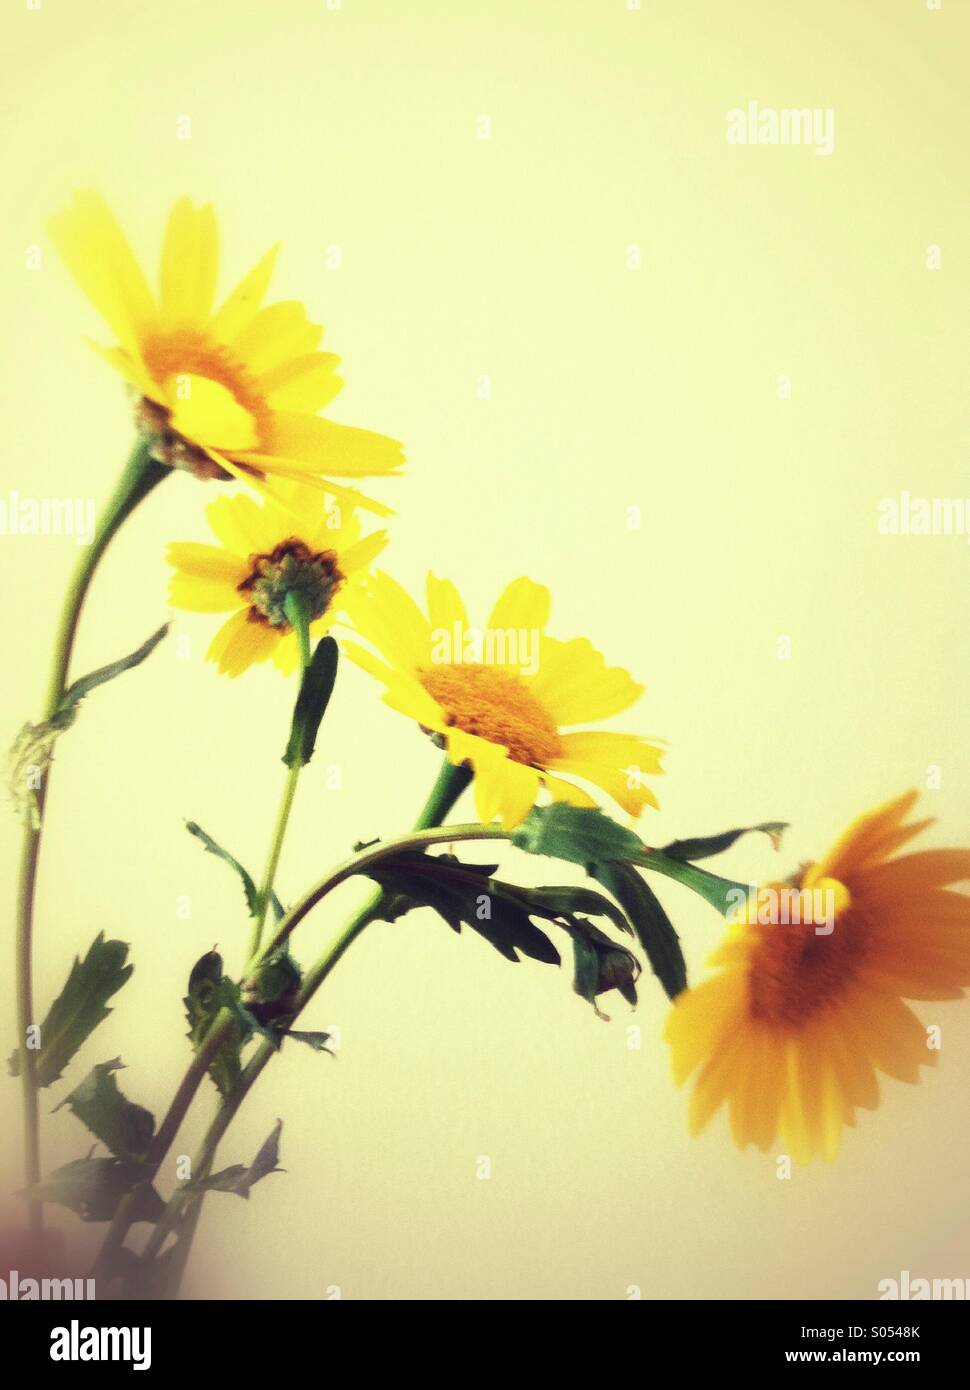 Wild summer daisy flowers - Stock Image